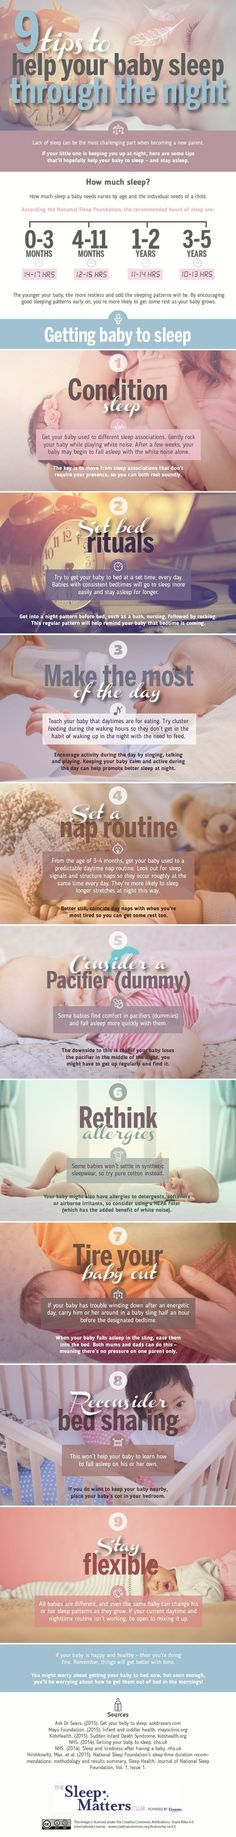 9 Tips To Help Your Baby Sleep Through The Night - Lack of sleep can often be the most challenging part of becoming a new parent, so Dreams has produced this list of tips and advice to help babies - and parents - get as much quality sleep as possible duri #babysleeptips